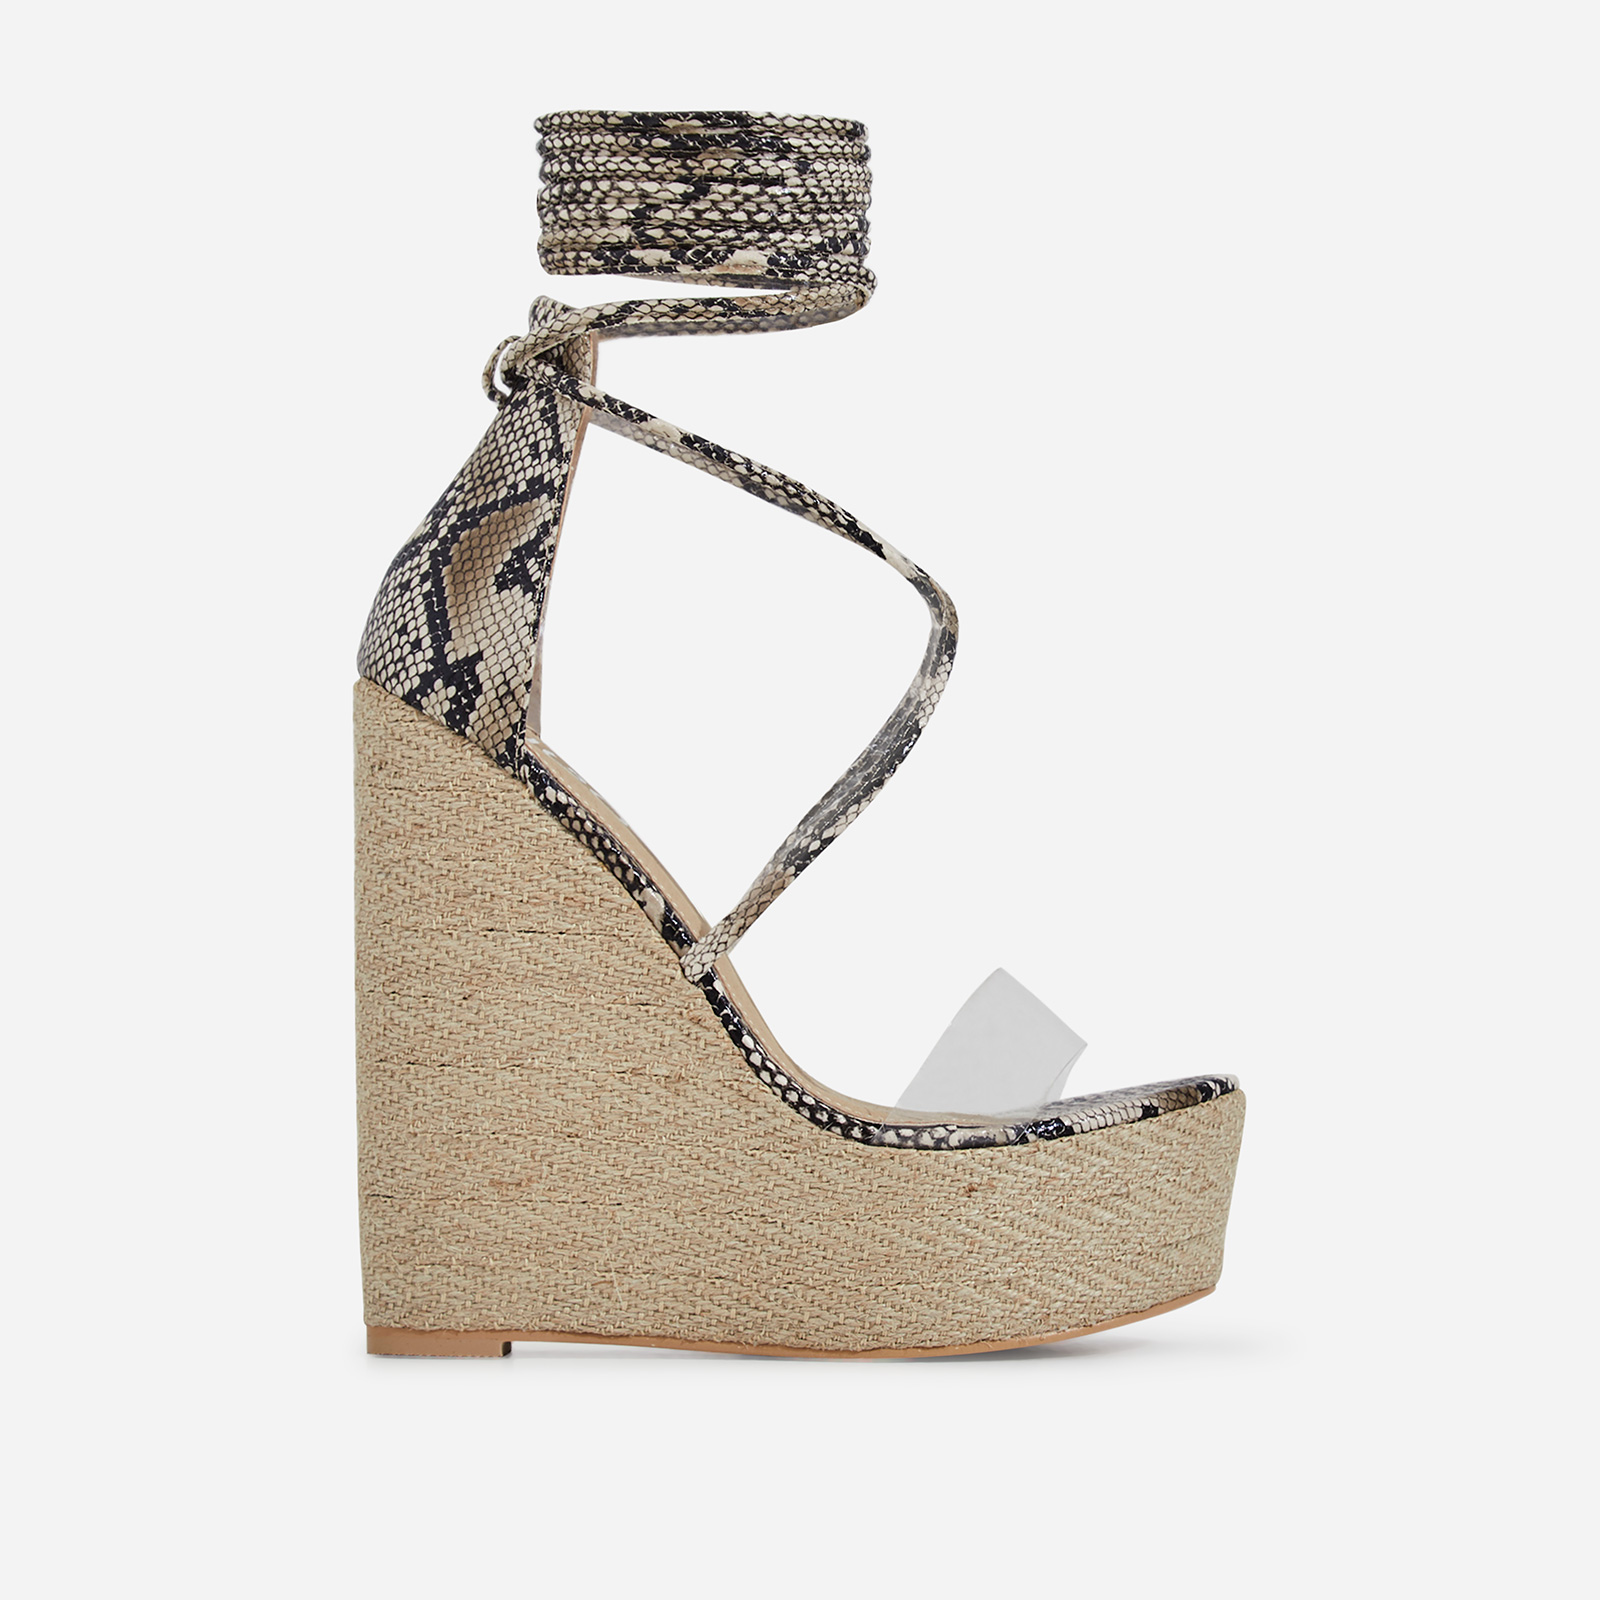 Aliki Perspex Platform Lace Up Espadrille Wedge Block Heel In Nude Snake Print Faux Leather